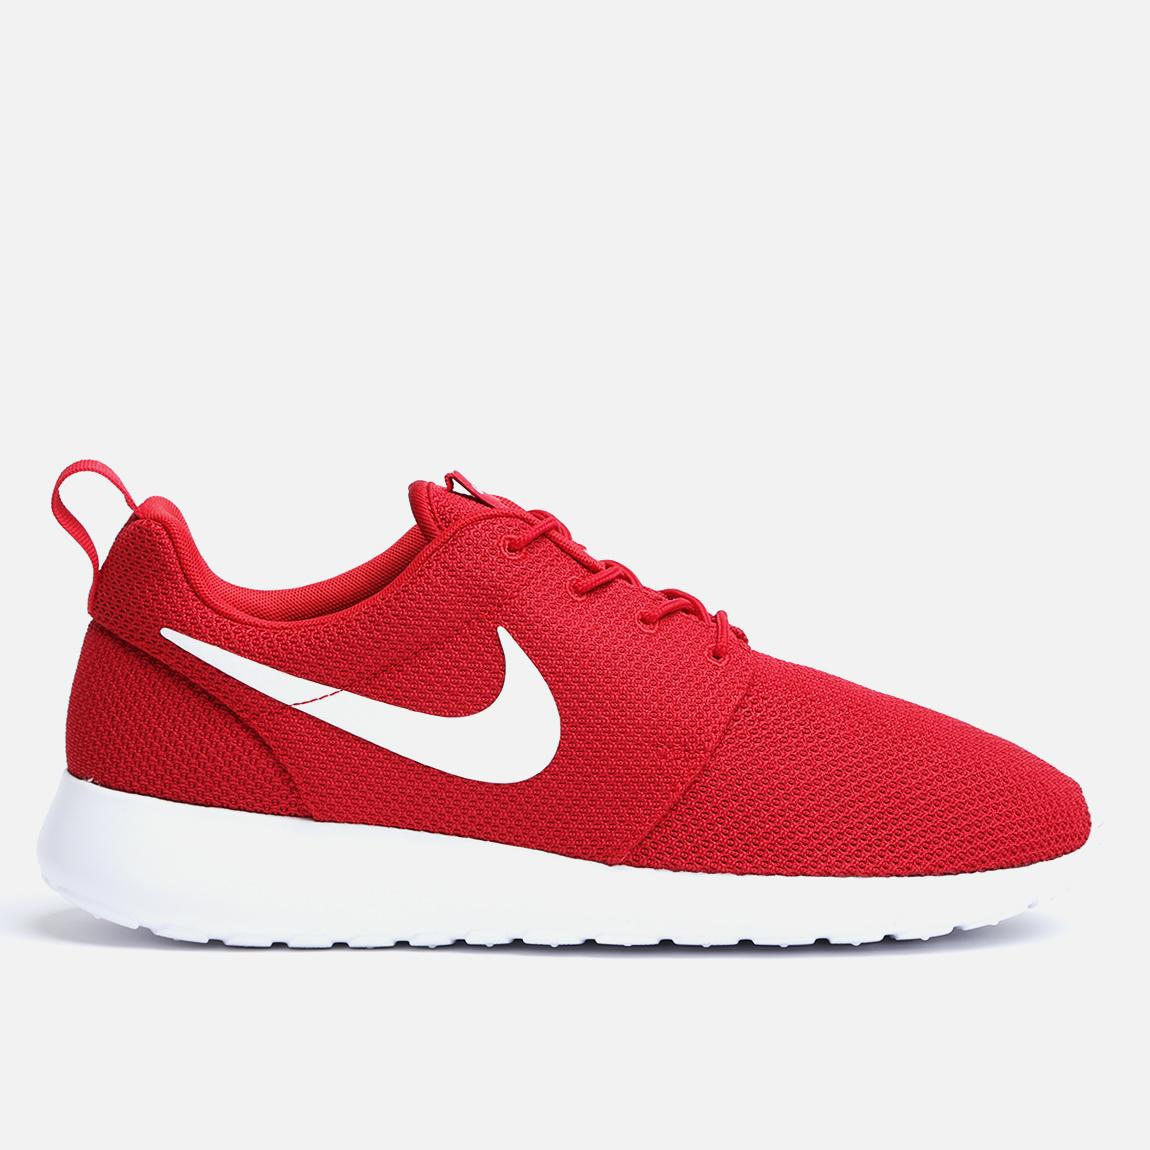 ffda40fdf4f2 Roshe Run - 511881-612 - Gym Red   White Nike Sneakers